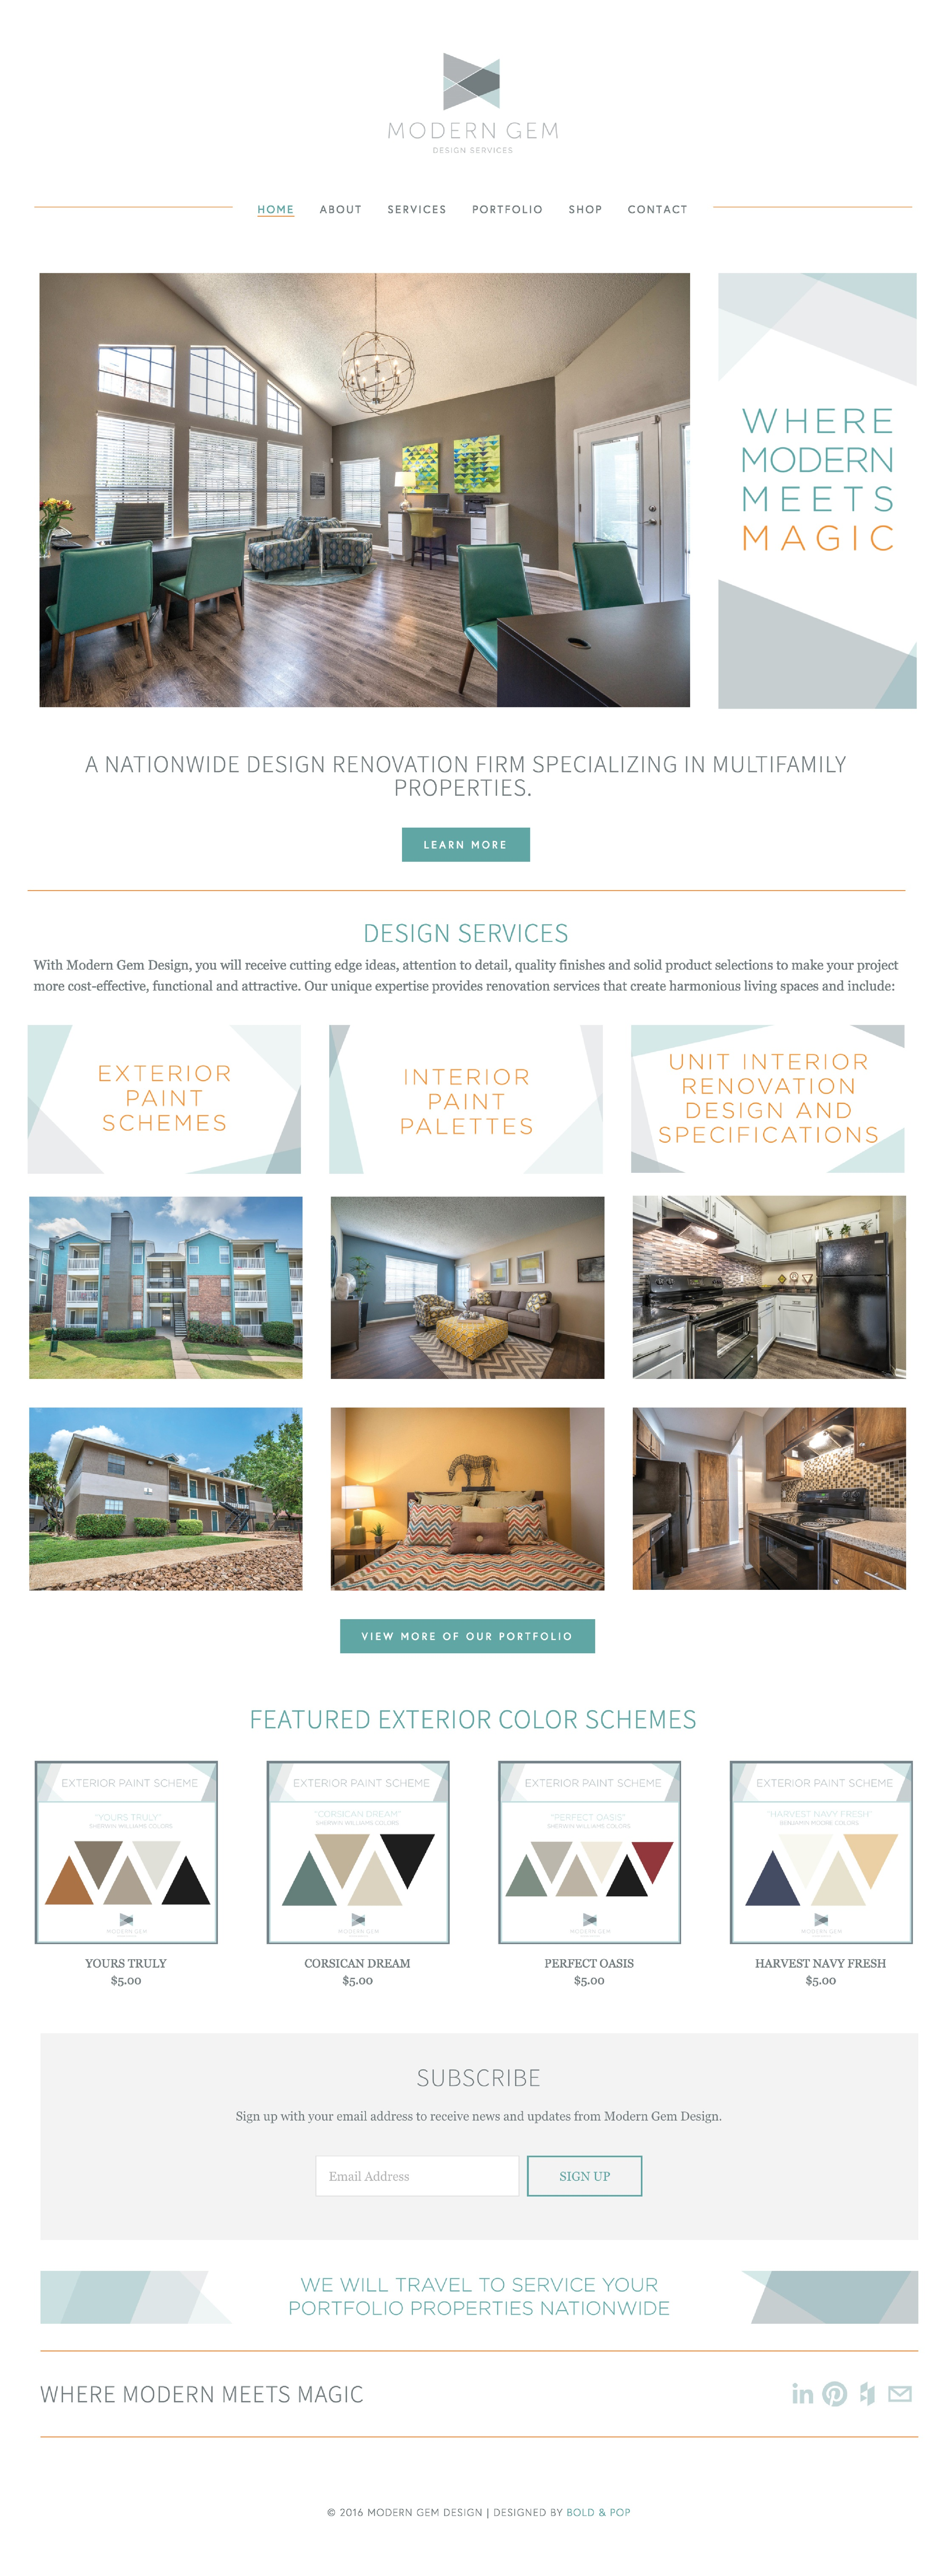 Interior Design Firm Website & Collateral Design